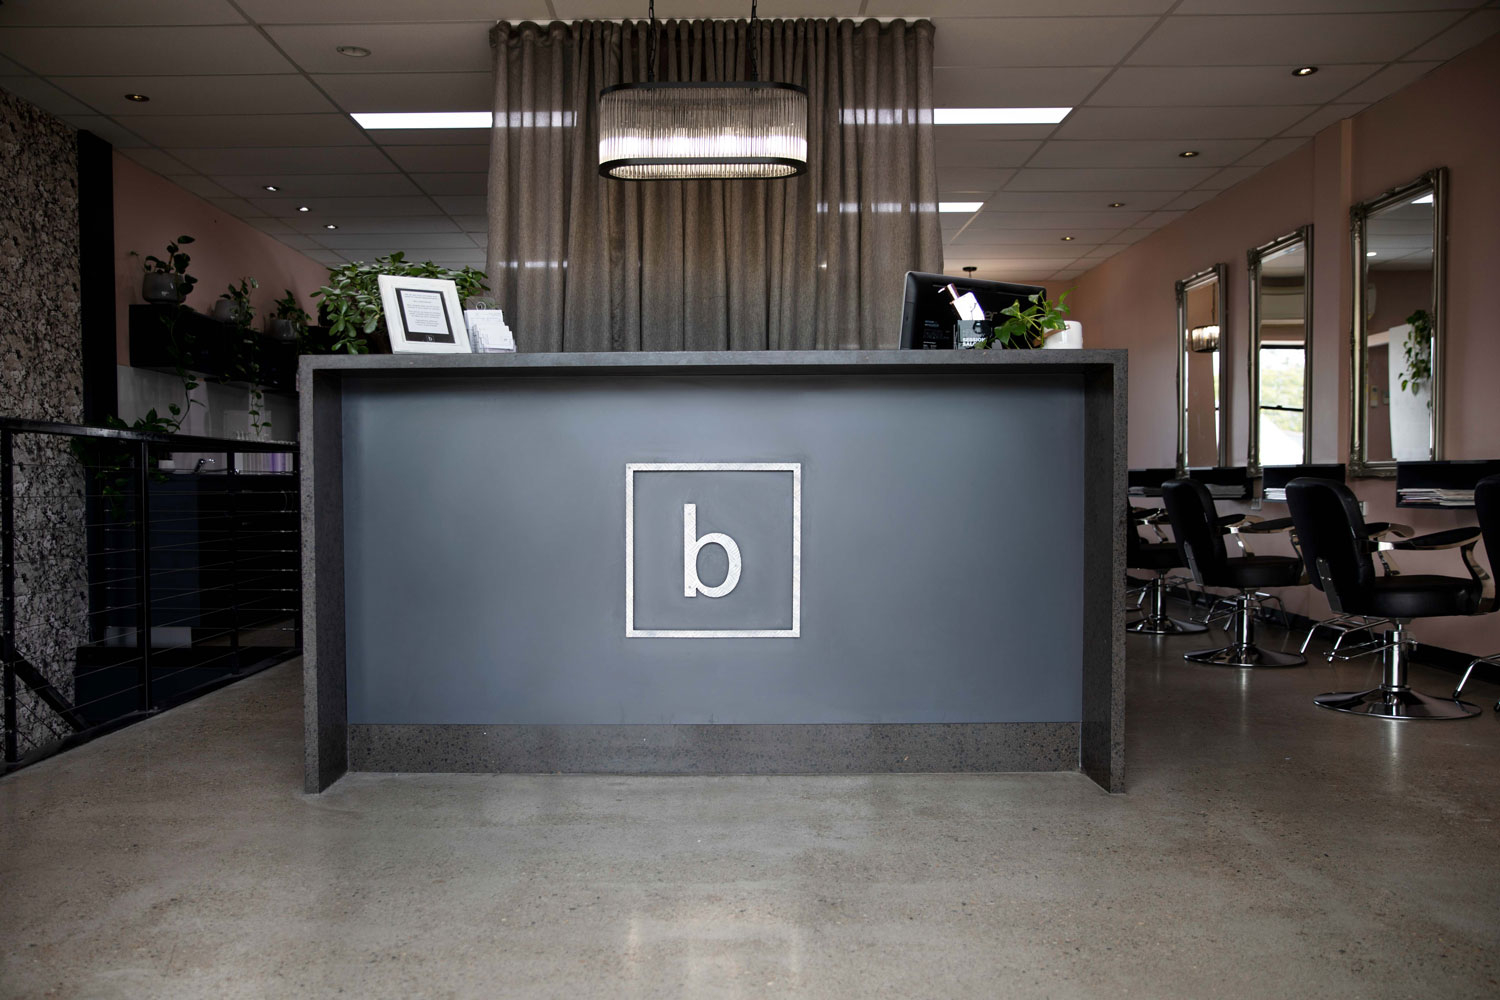 bhair salon reception desk